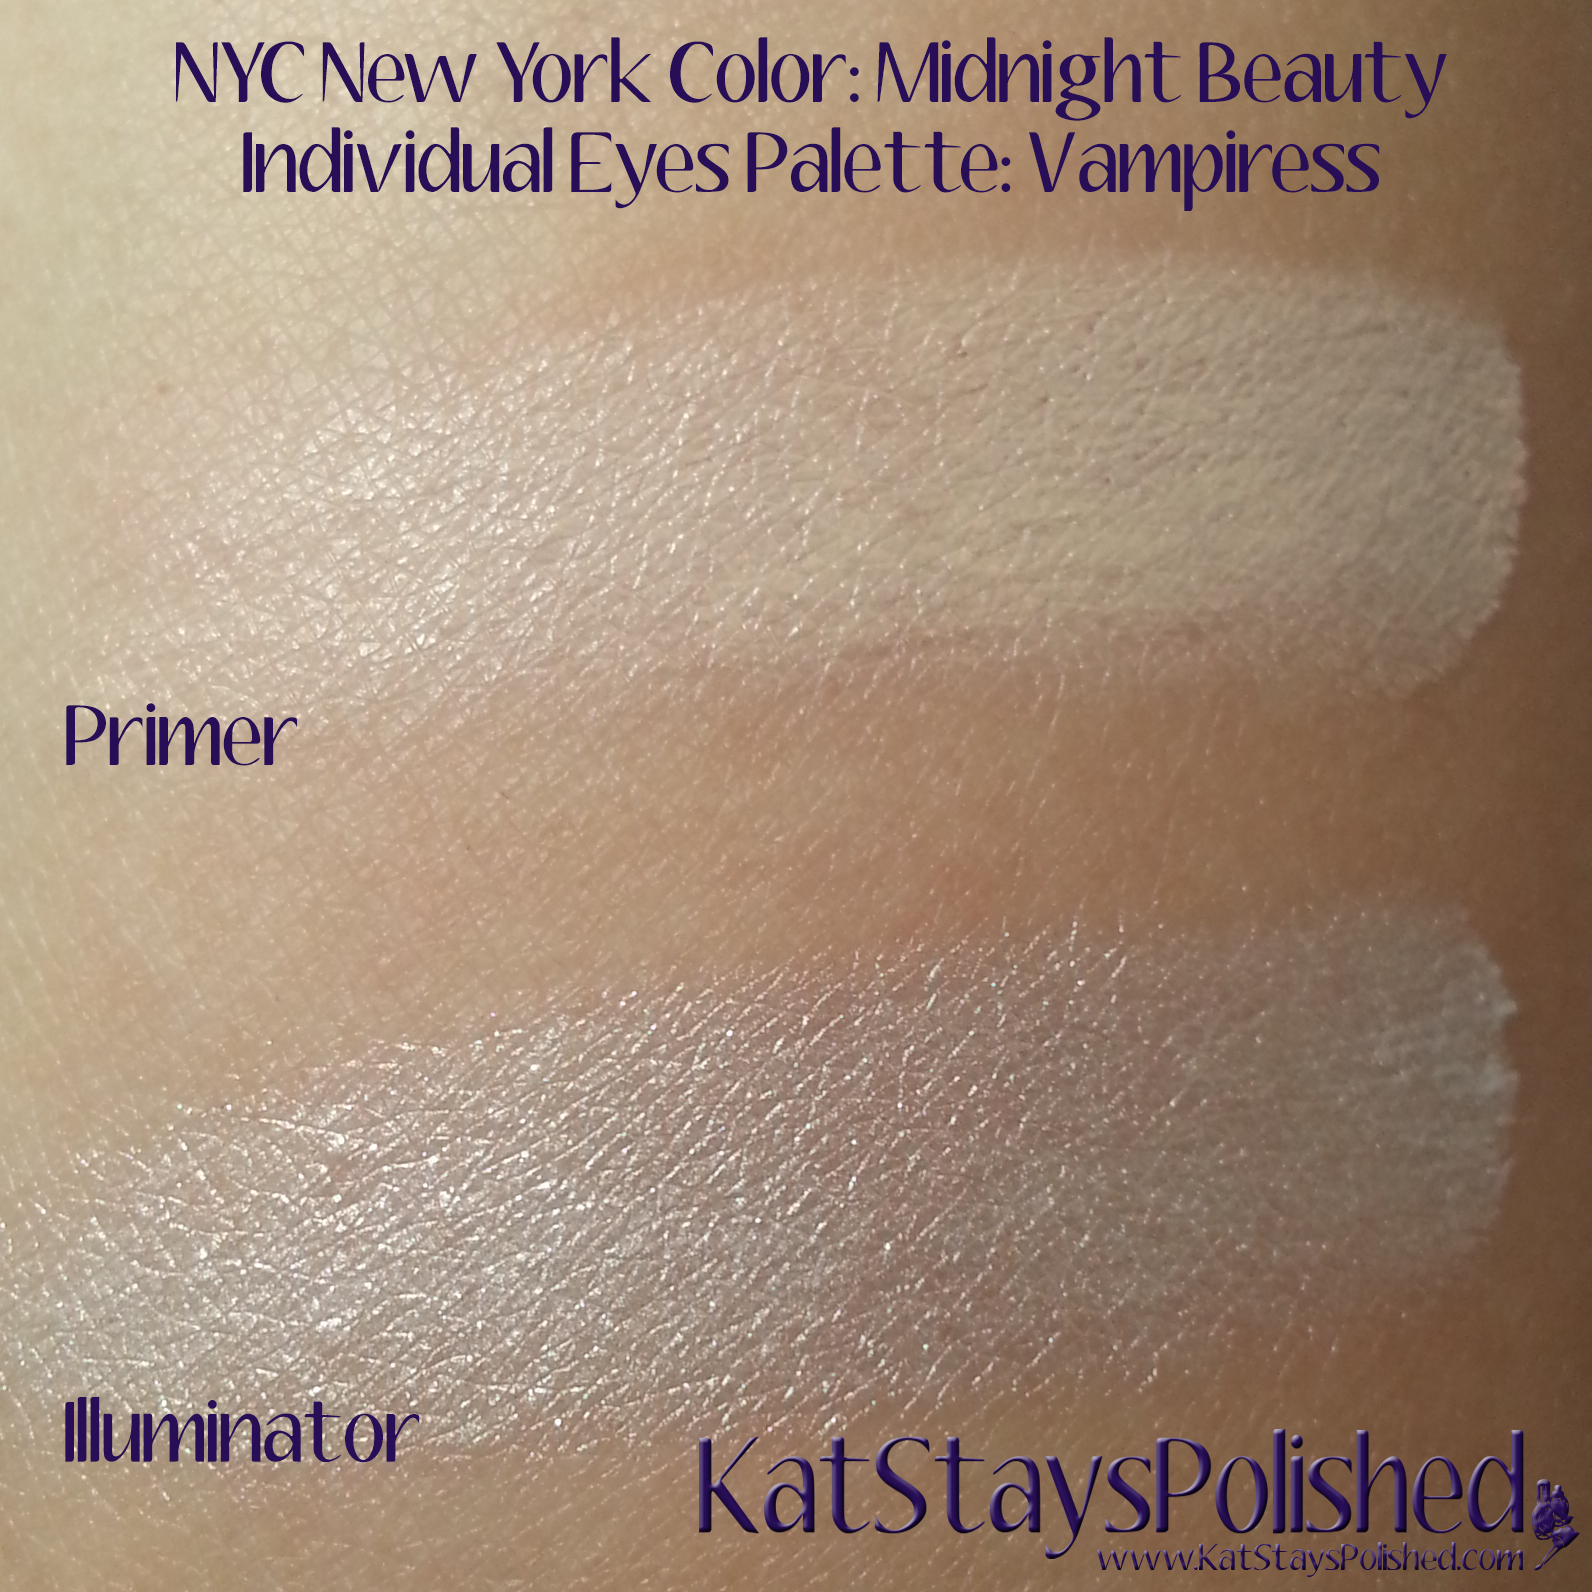 NYC New York Color: Midnight Beauty Individual Eyes Palette - Vampiress | Kat Stays Polished